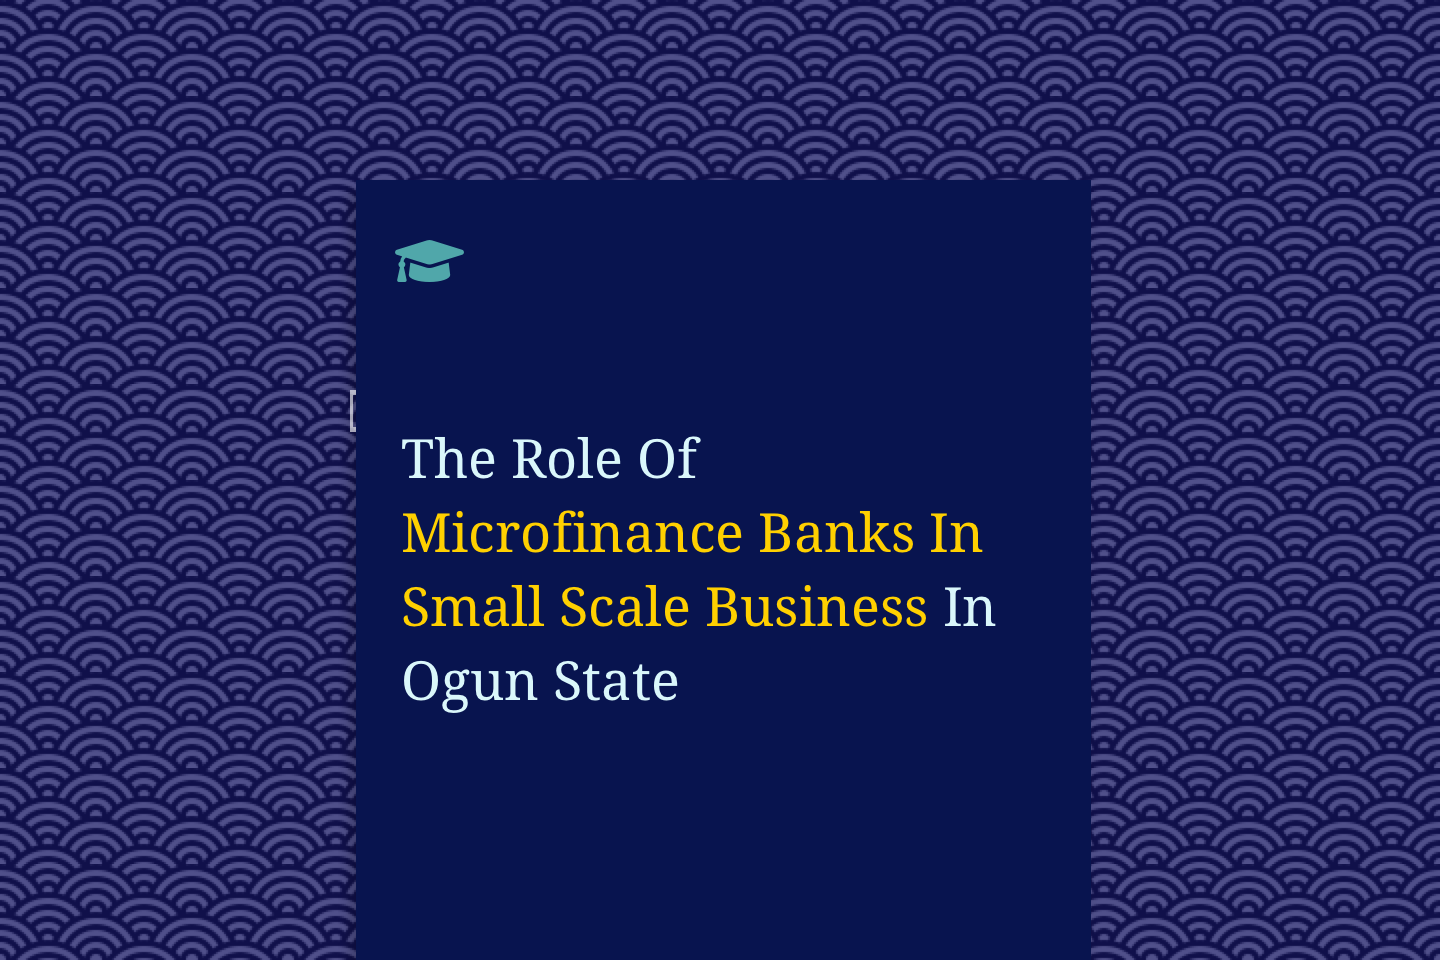 The Role Of Microfinance Banks In Small Scale Business In Ogun State